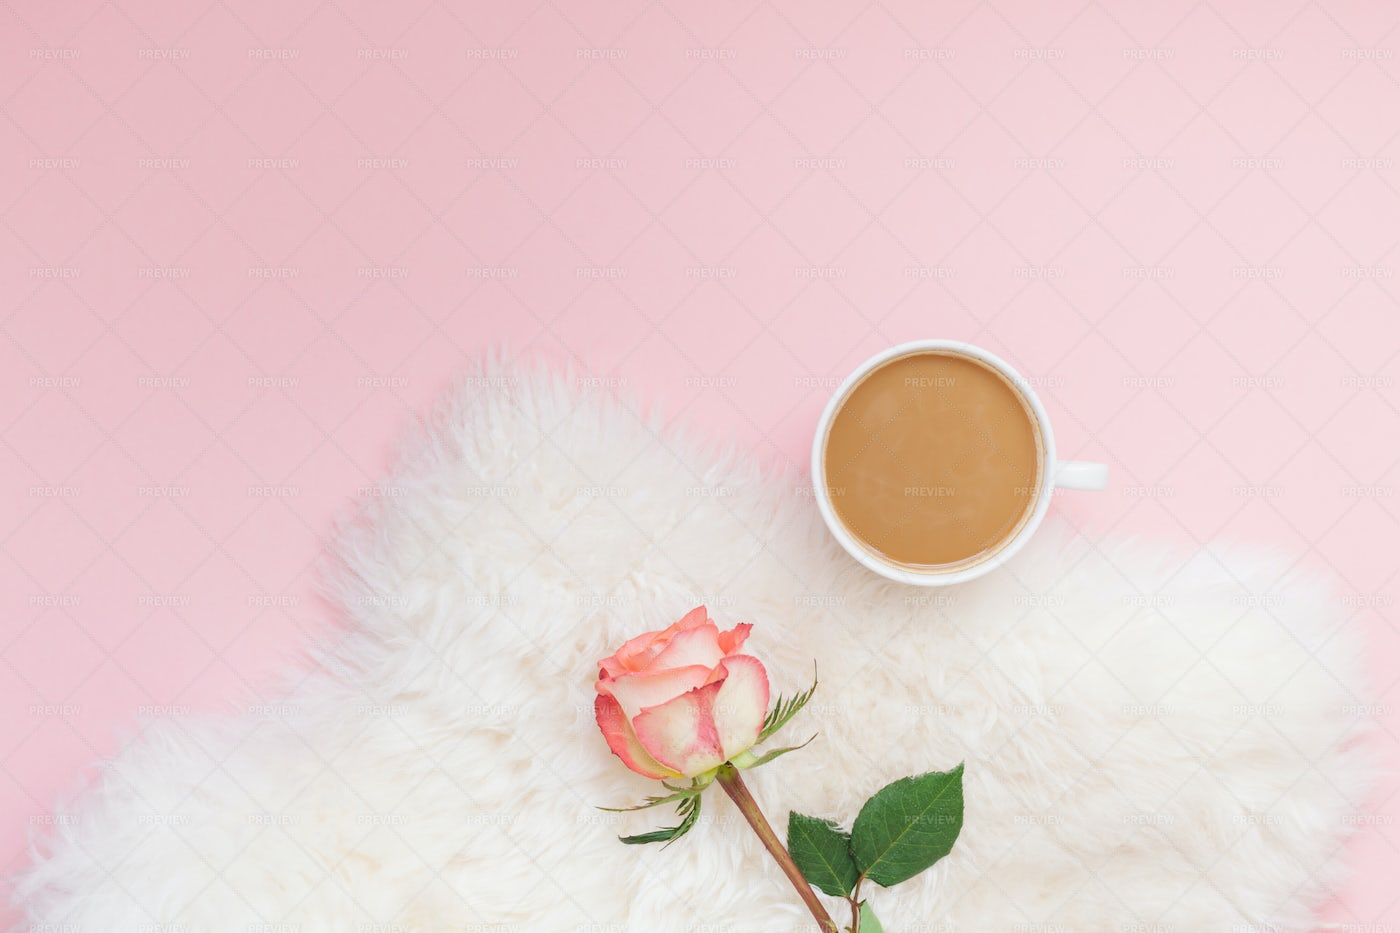 Coffee And Rose Flower: Stock Photos